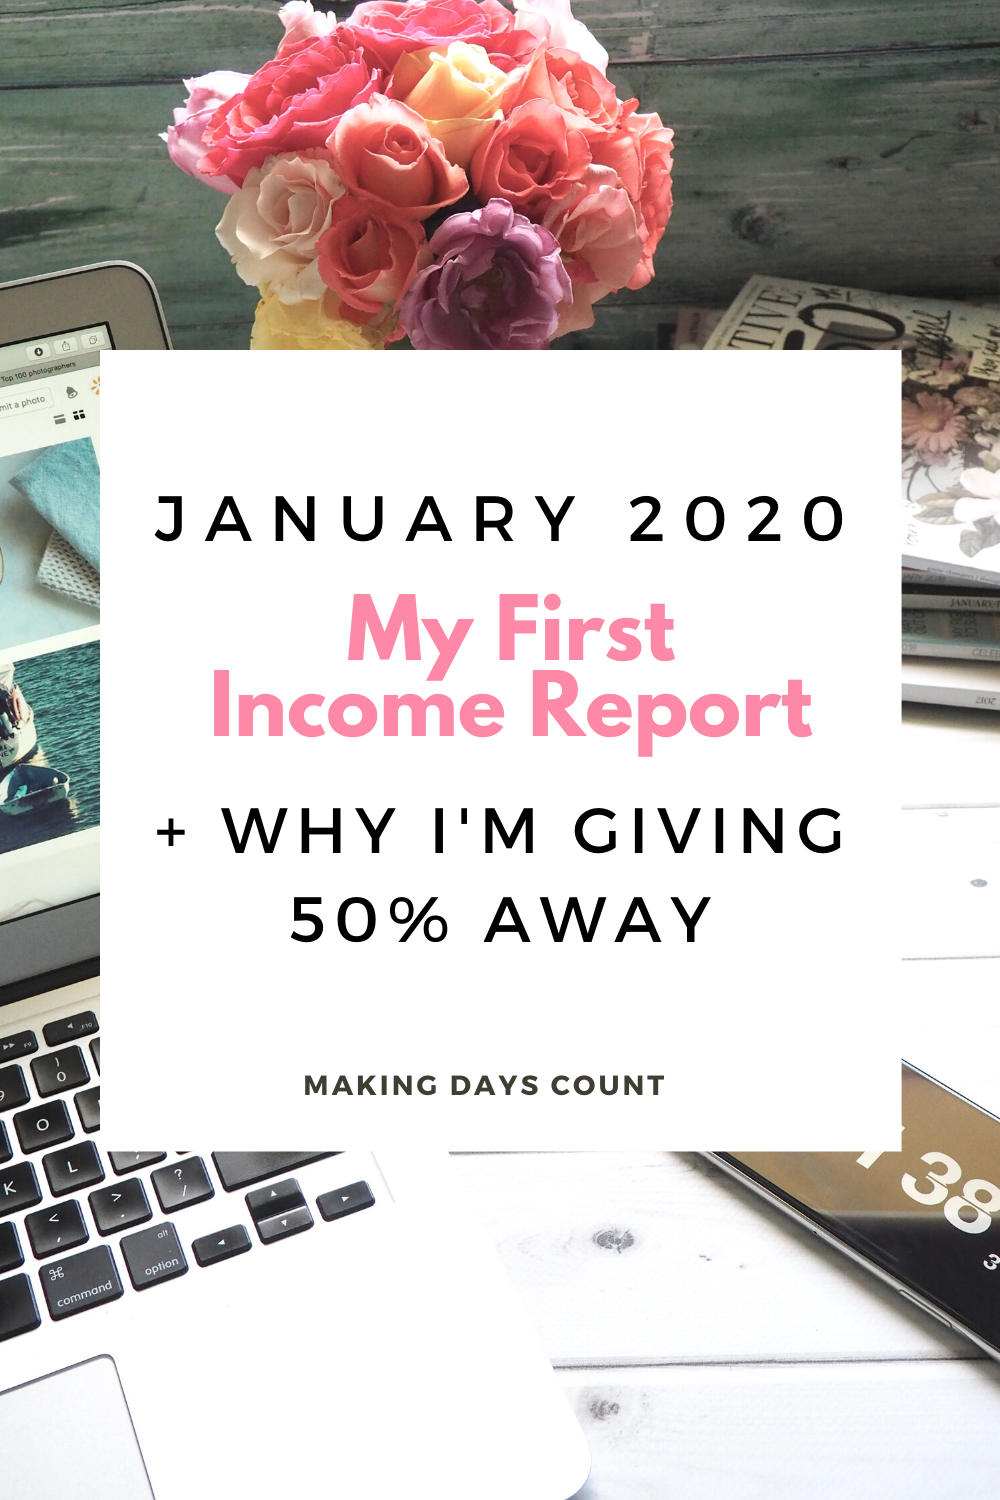 Jan 2020 My First Income Report